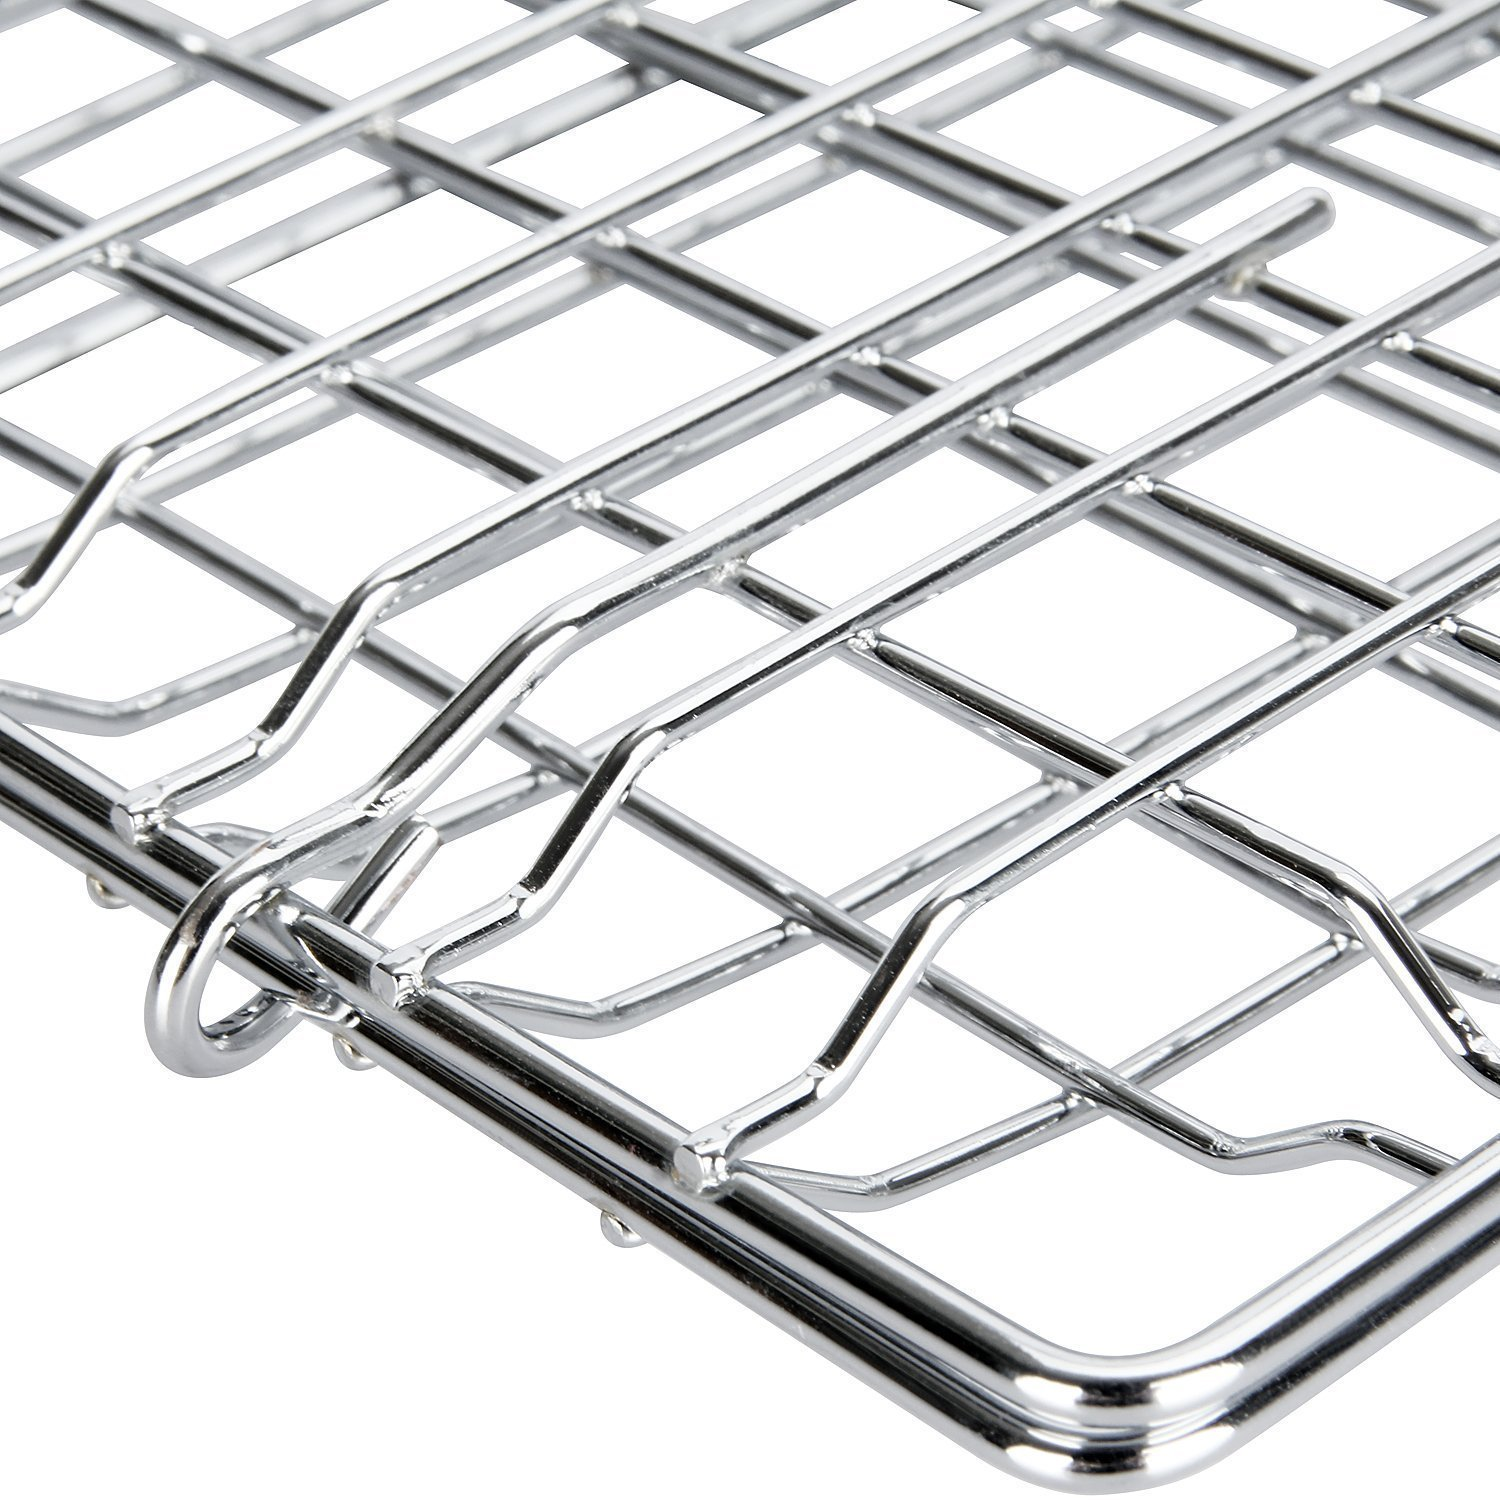 Yeeteching Fish Grilling Basket, Stainless Steel Grilling Basket for BBQ(Additional Basting Brush 2 Pack + Carrying Case)